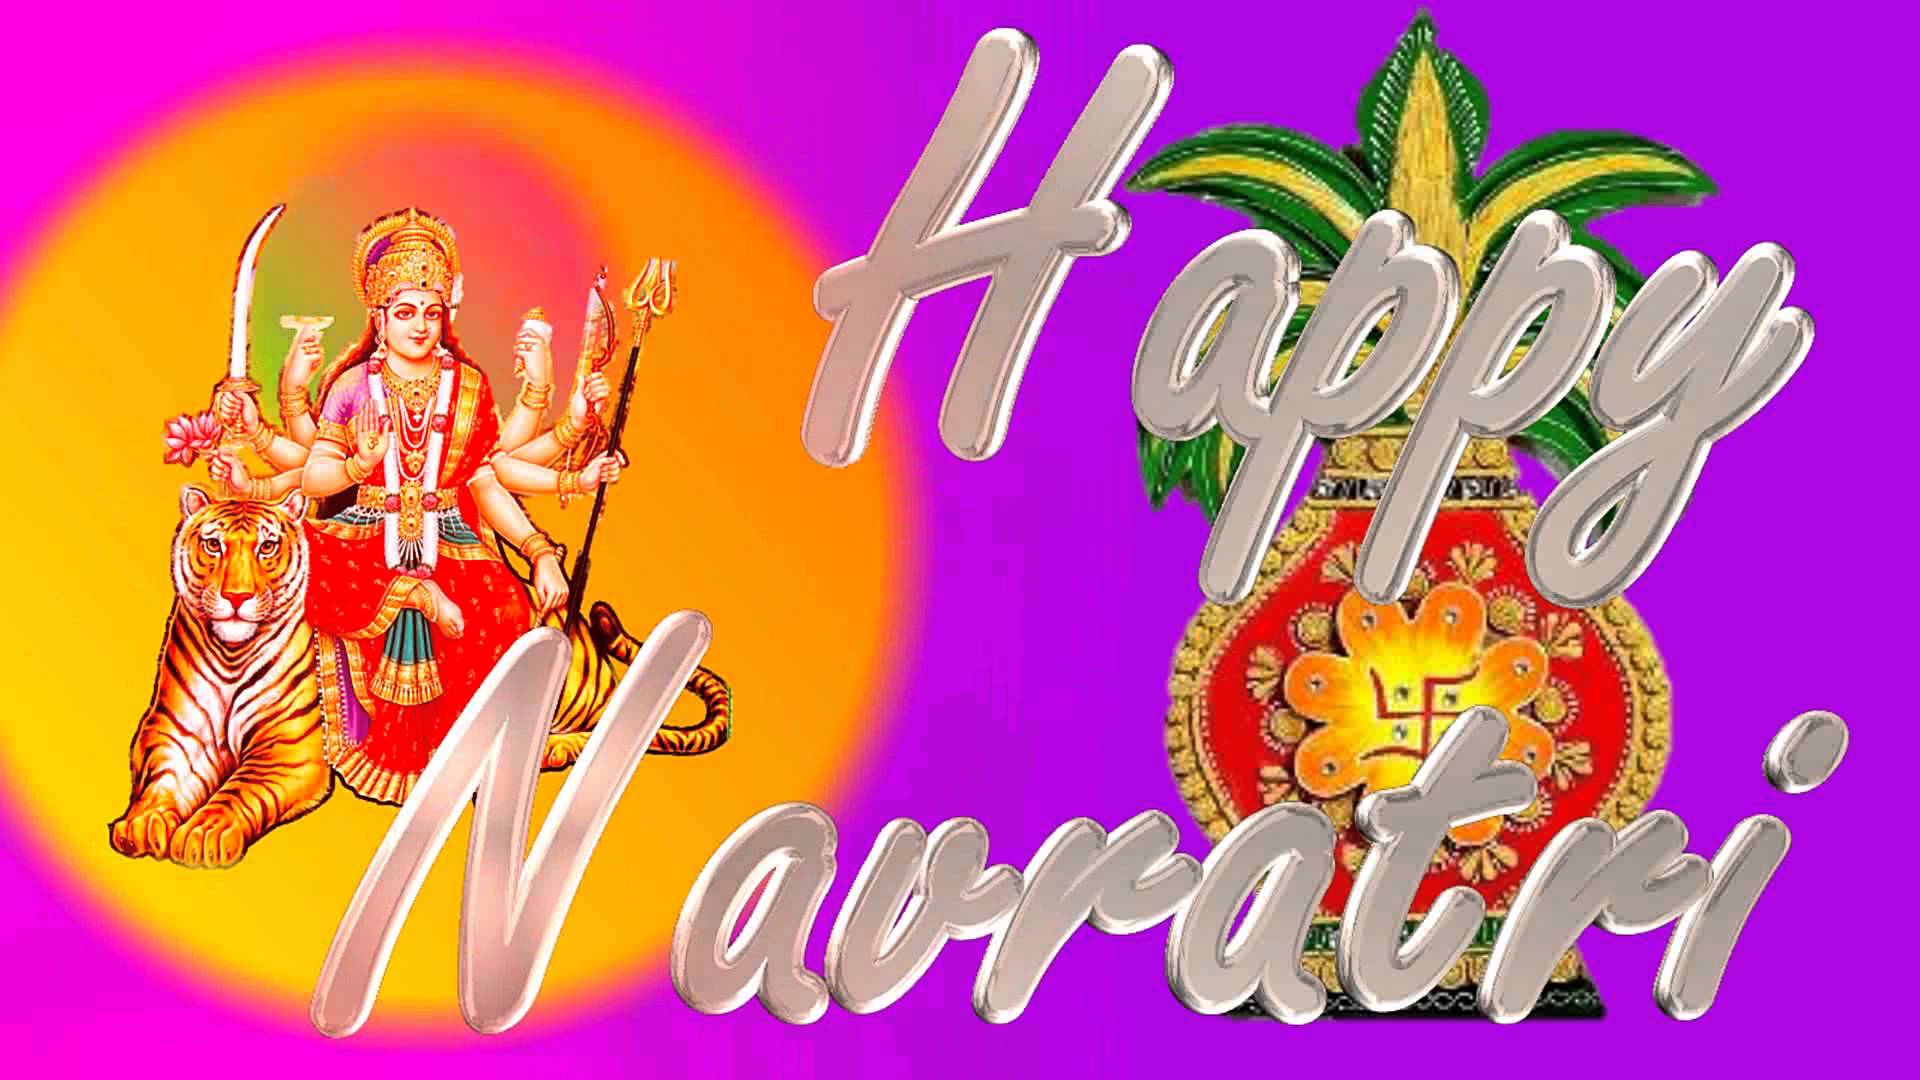 Happy wishes quotes hd. 2016 clipart navratri